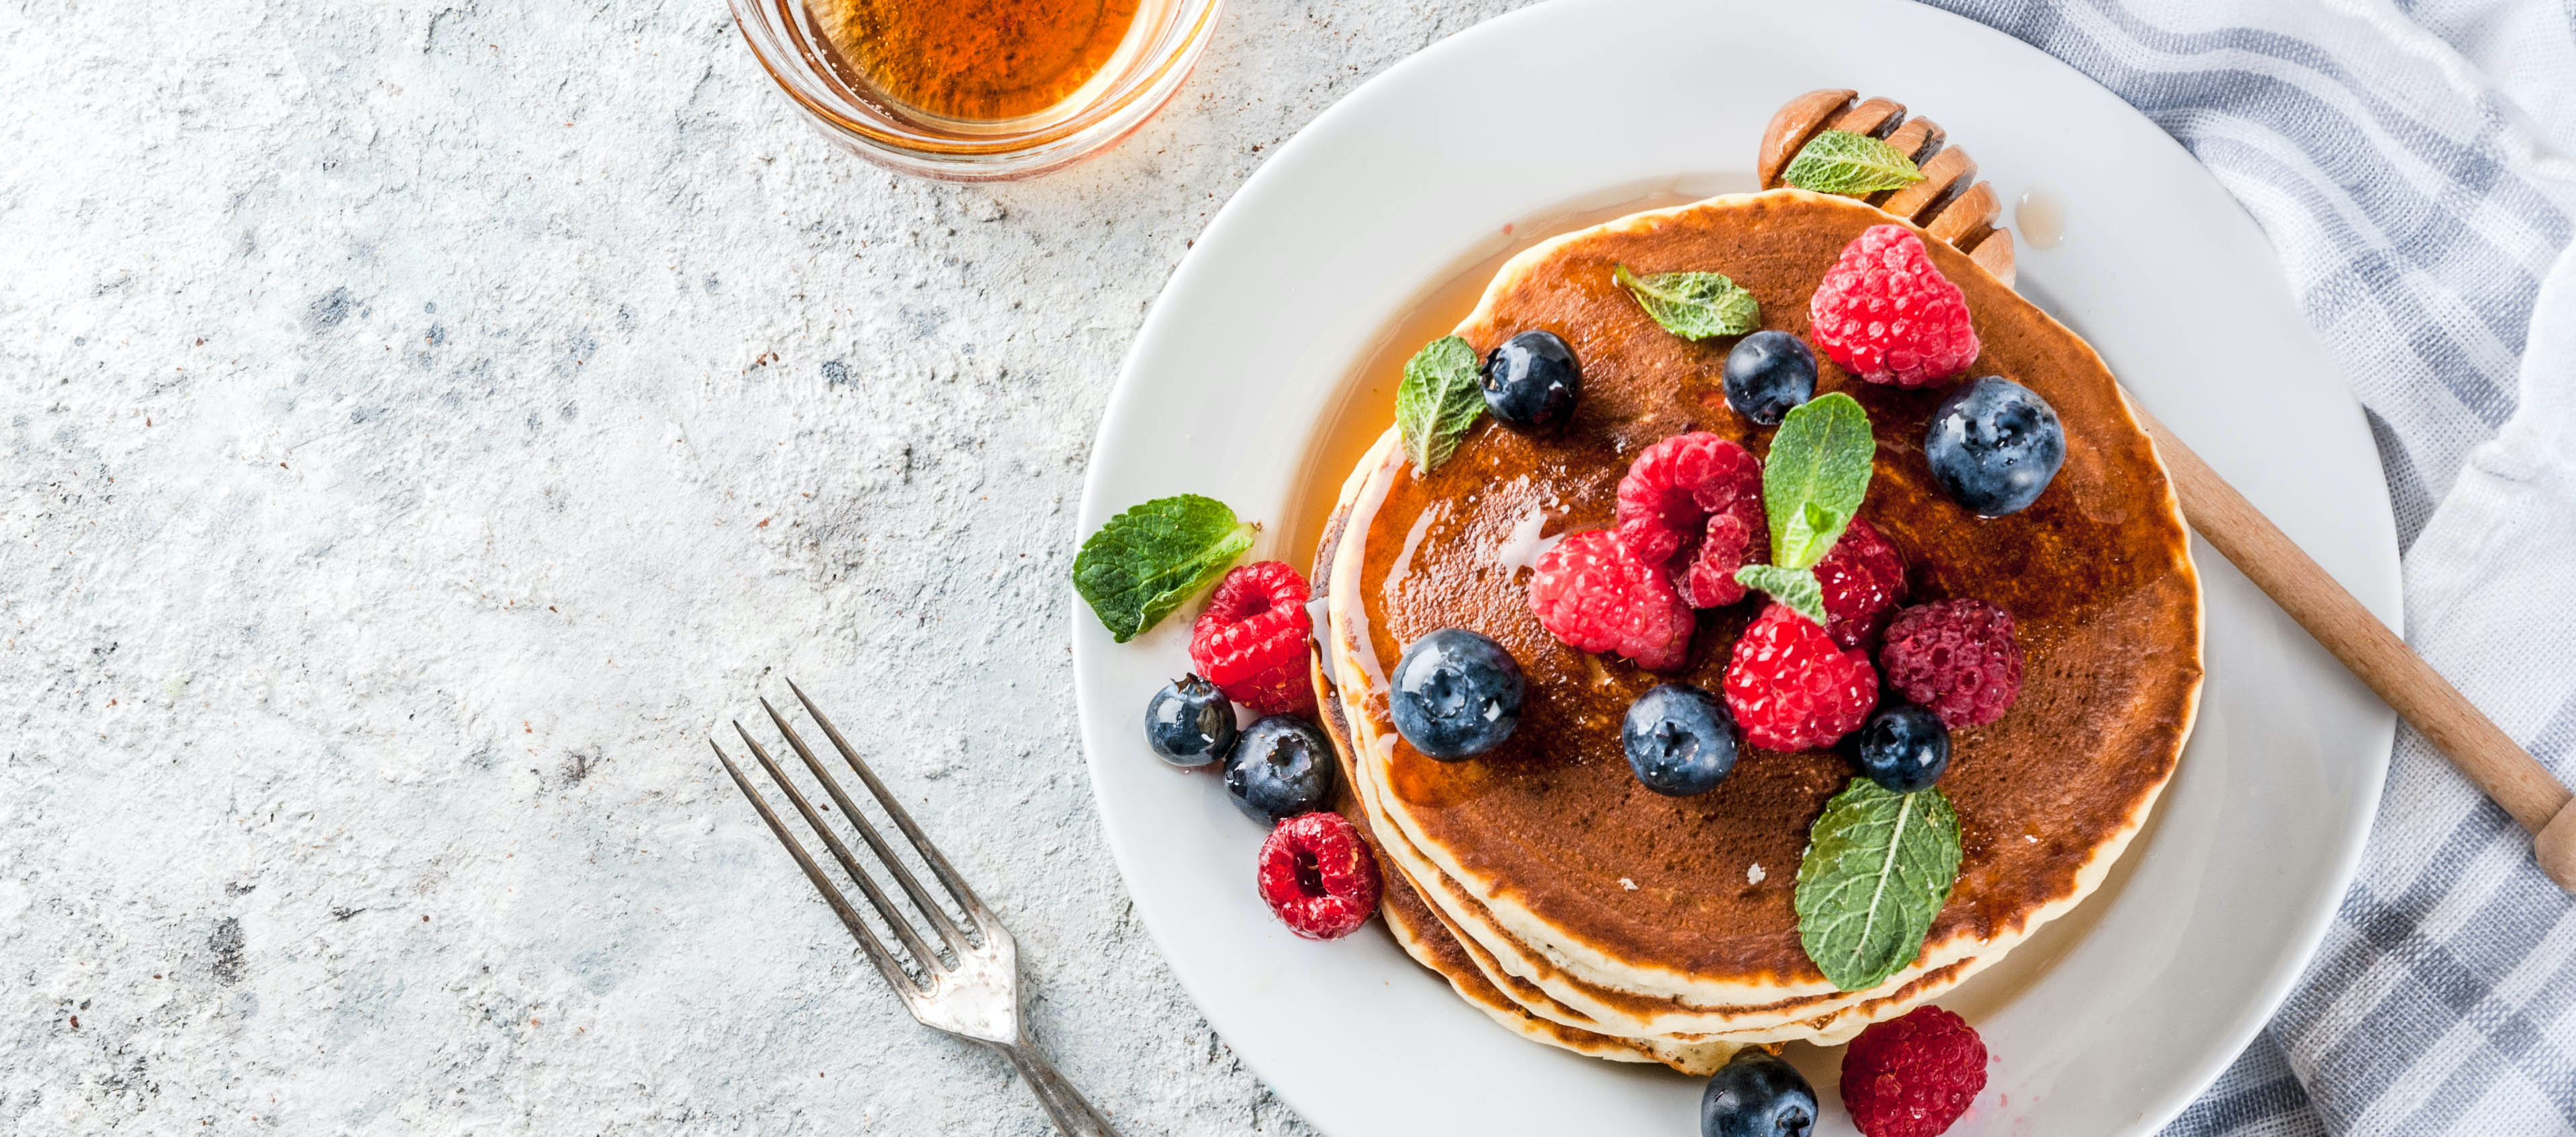 stack of pancakes on on a plate topped with berries and mint. Image portrays a healthy plate of pancakes.